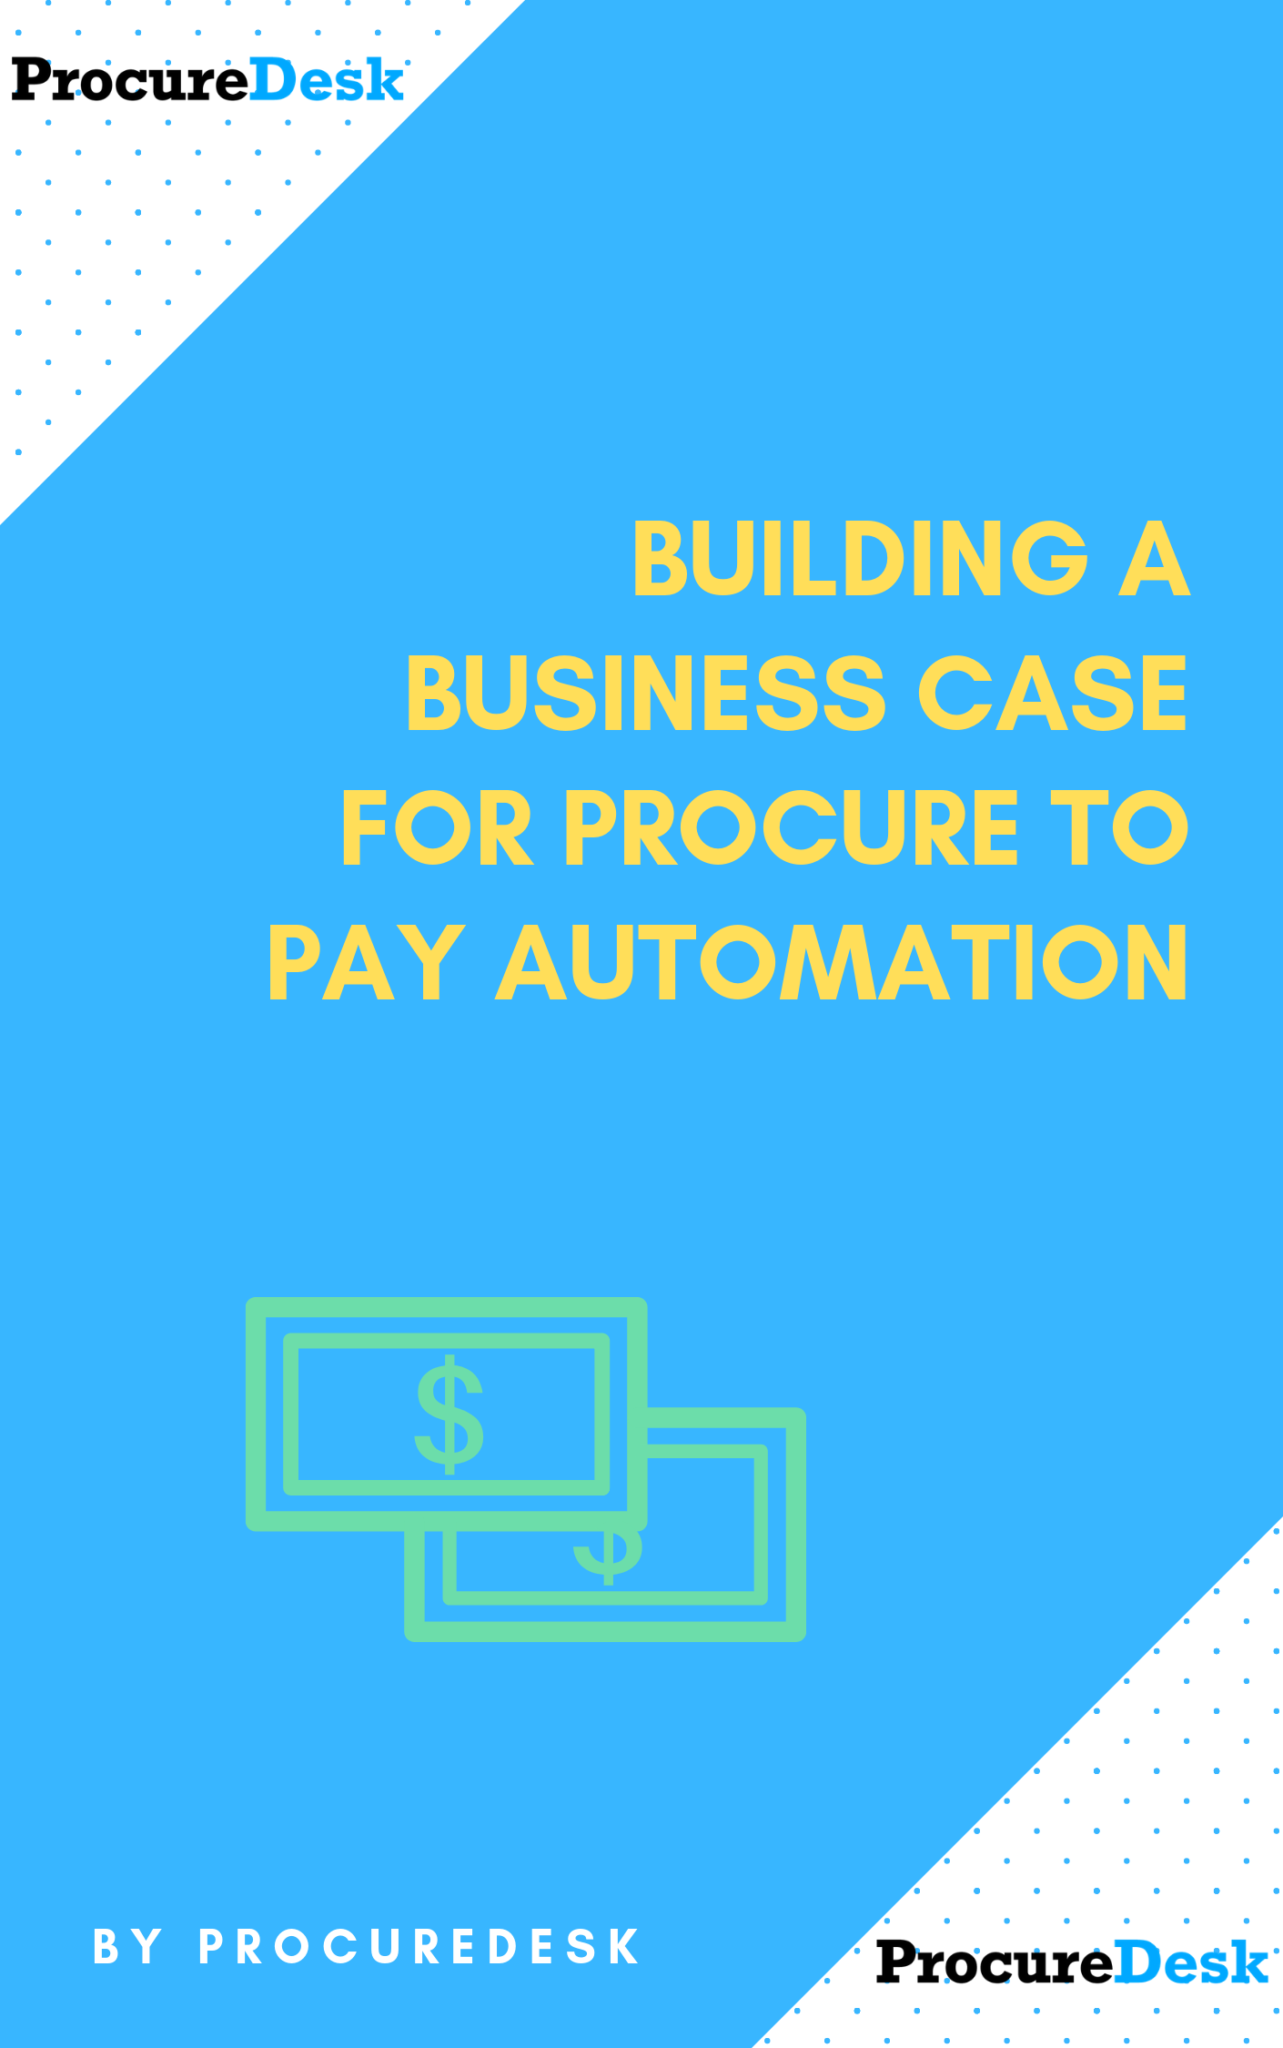 Building business case for procure to pay